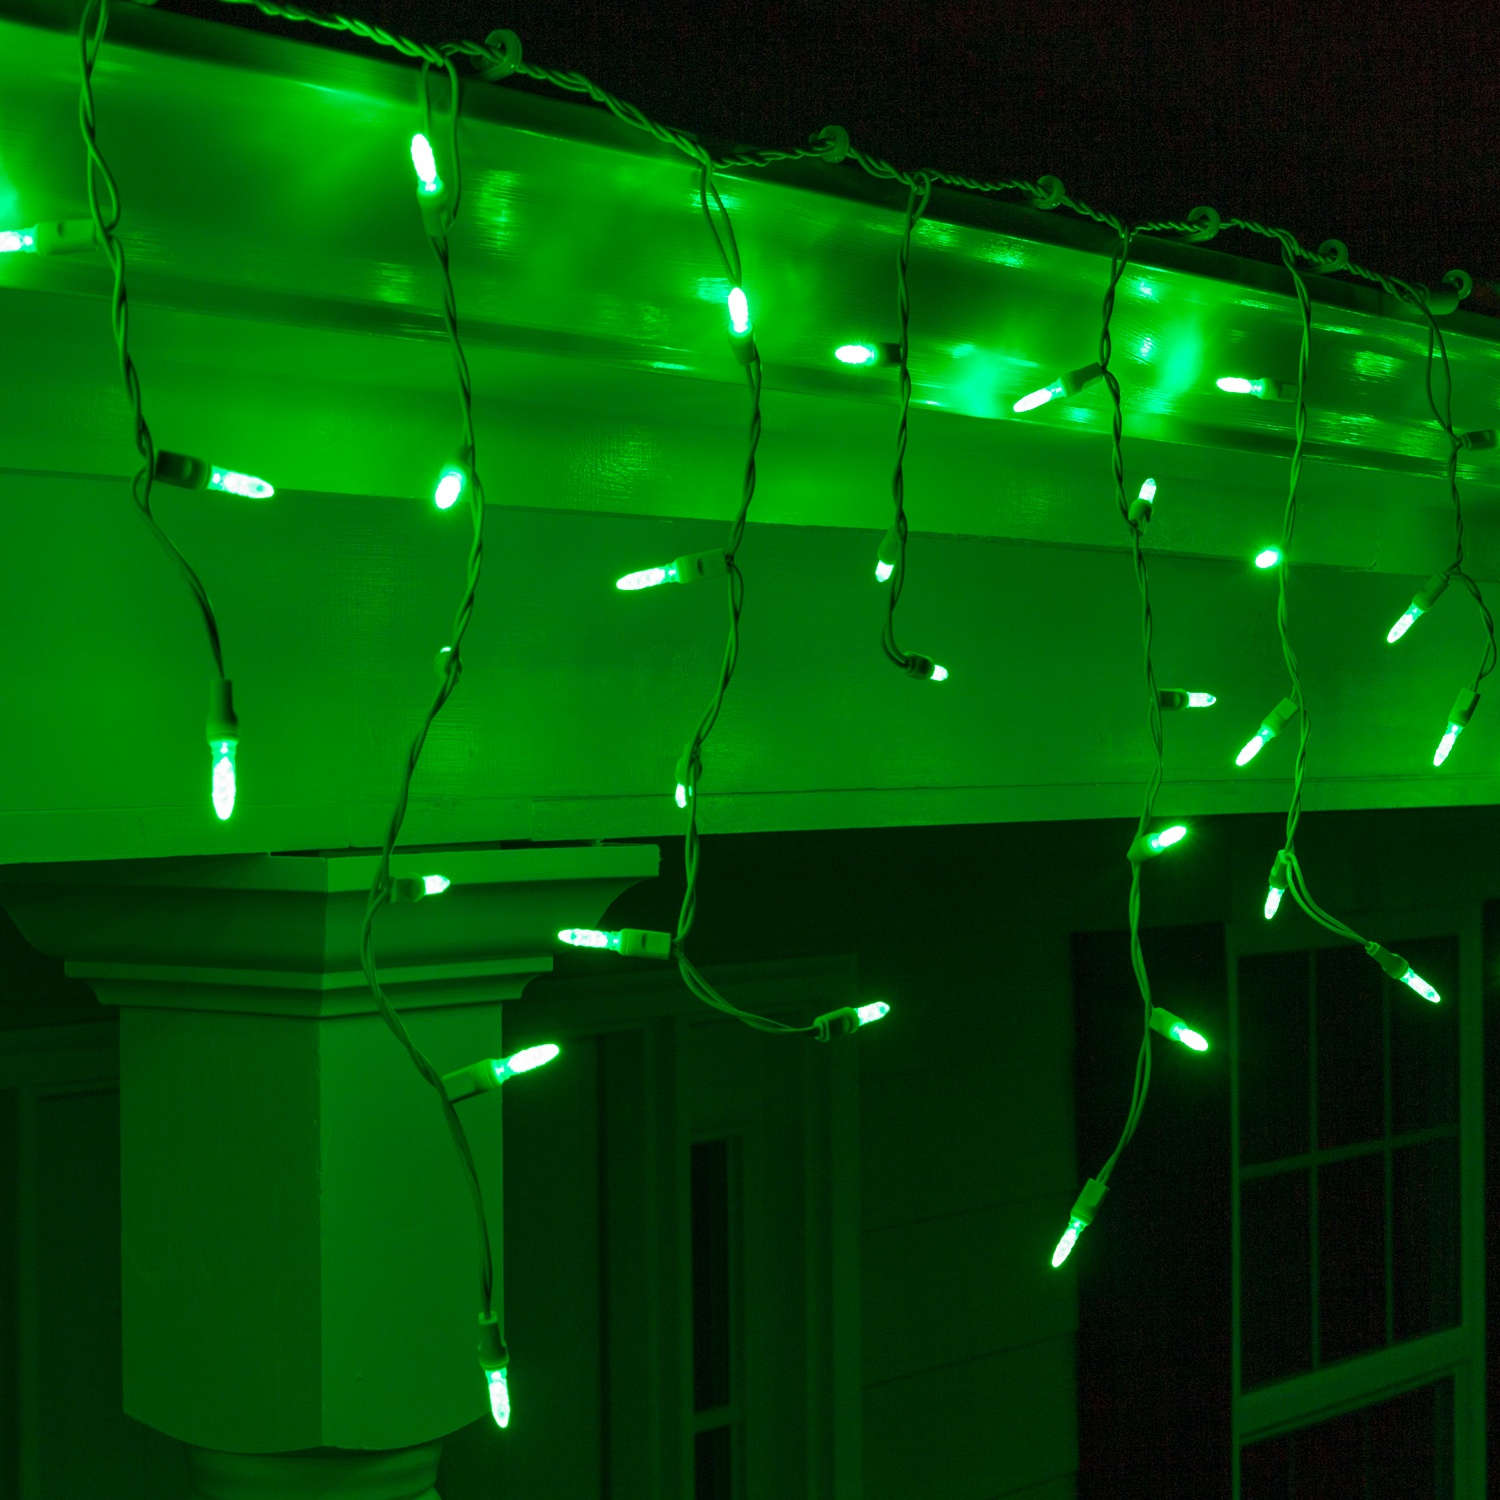 LED Christmas Lights - 70 M5 Green LED Icicle Lights